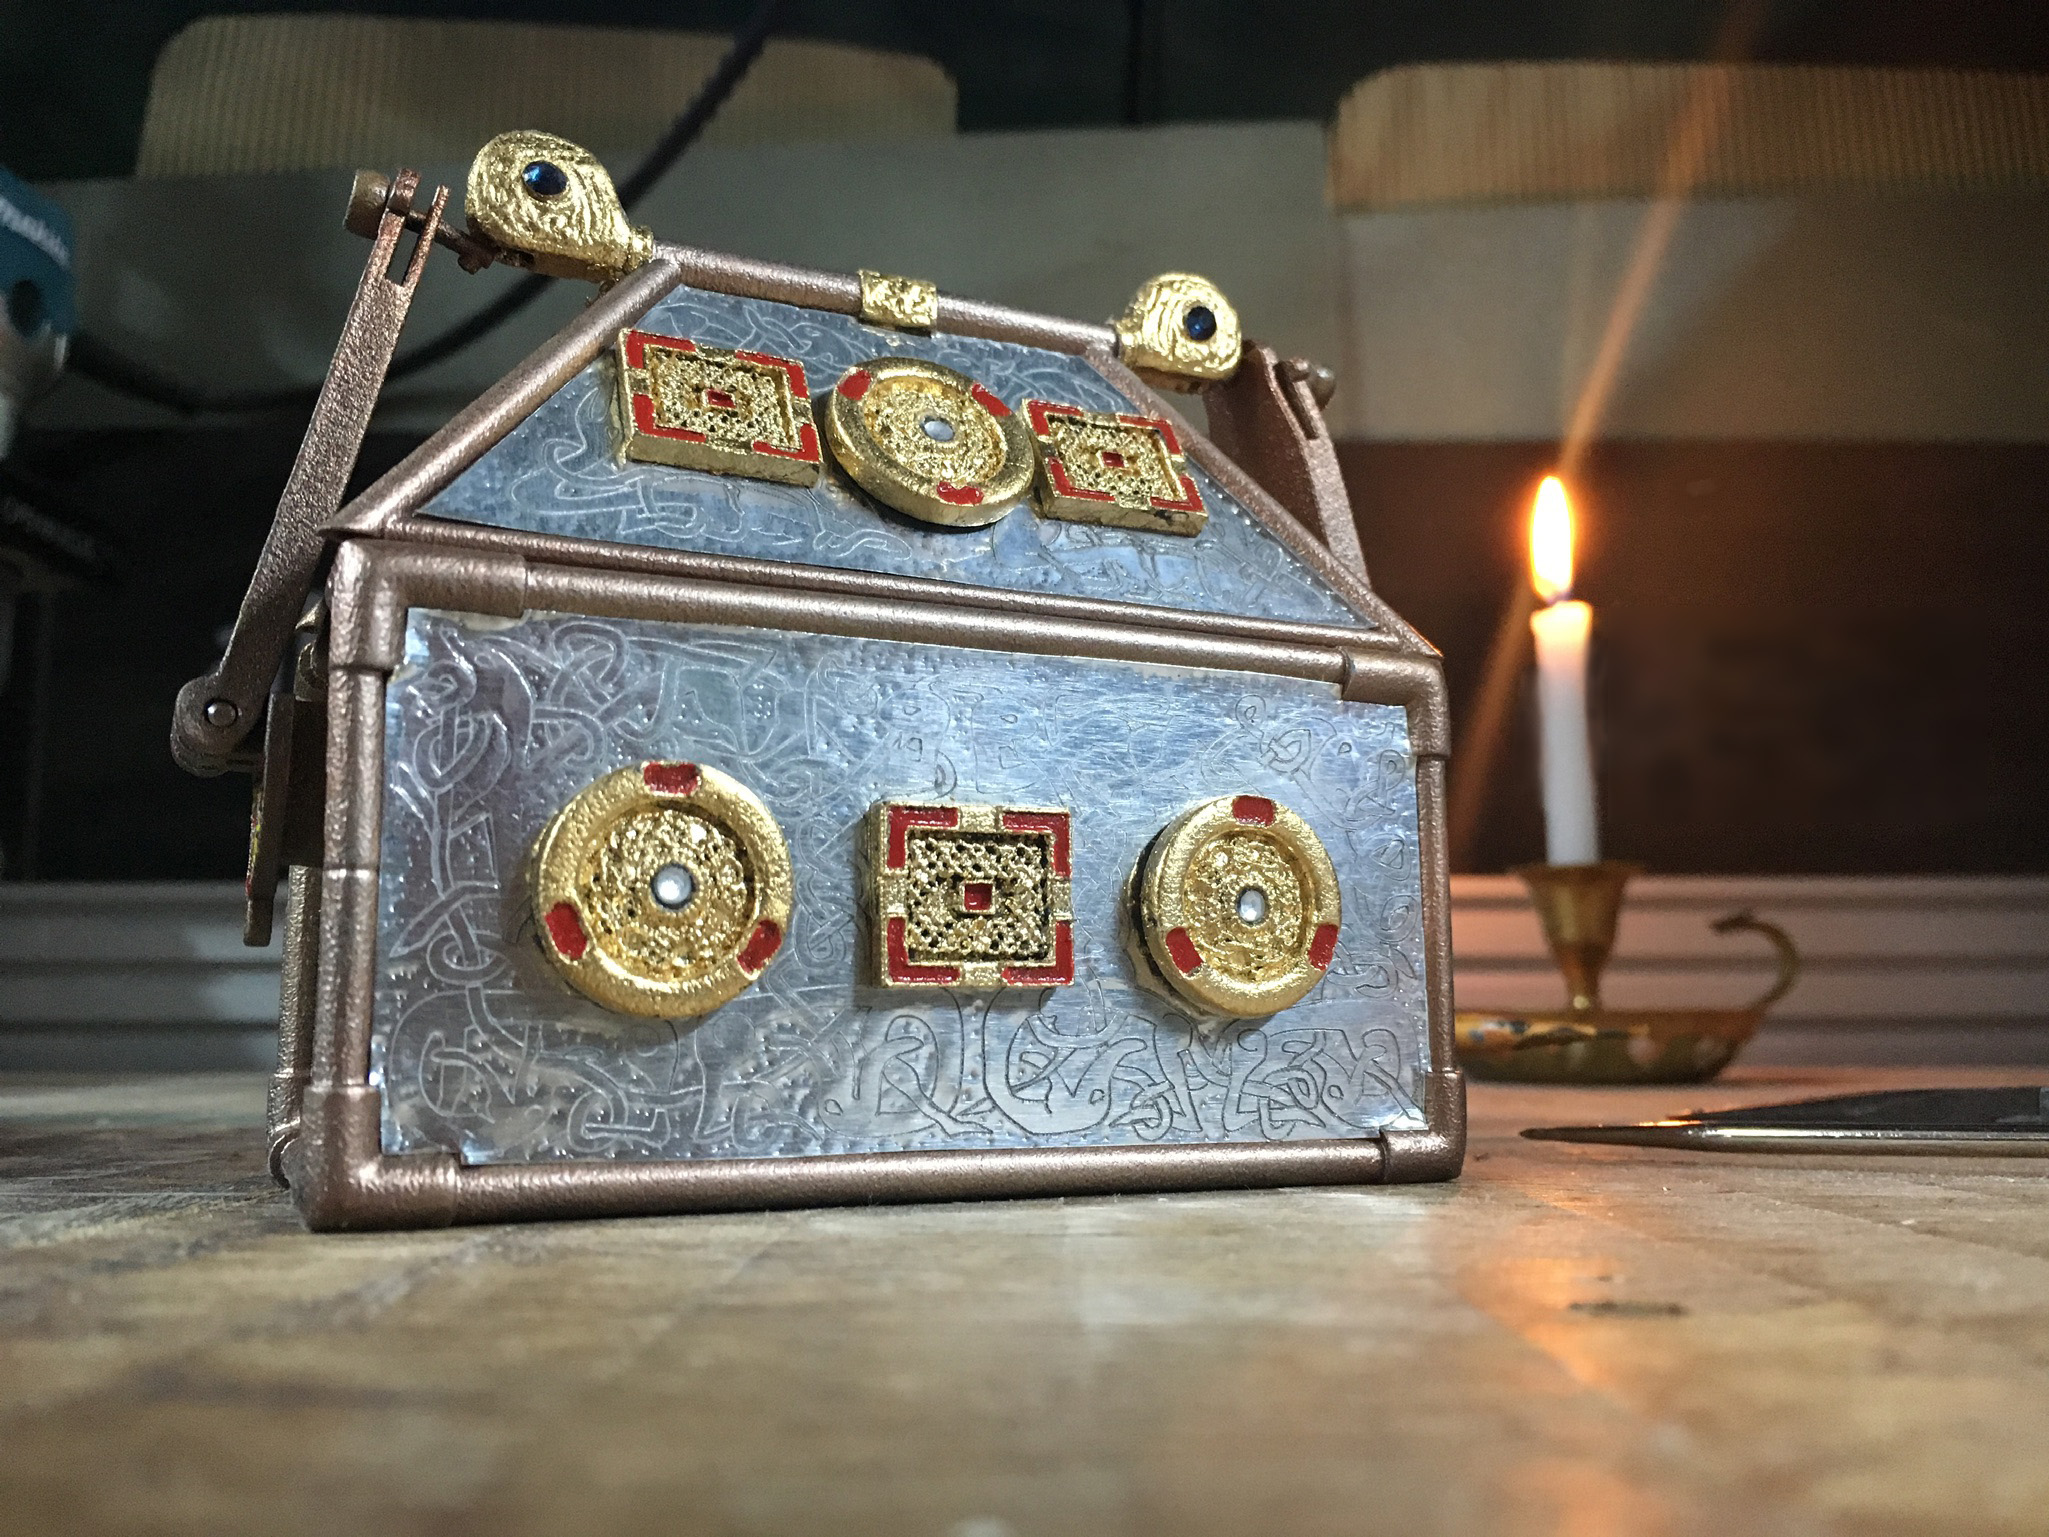 Monymusk Reliquary by candlelight